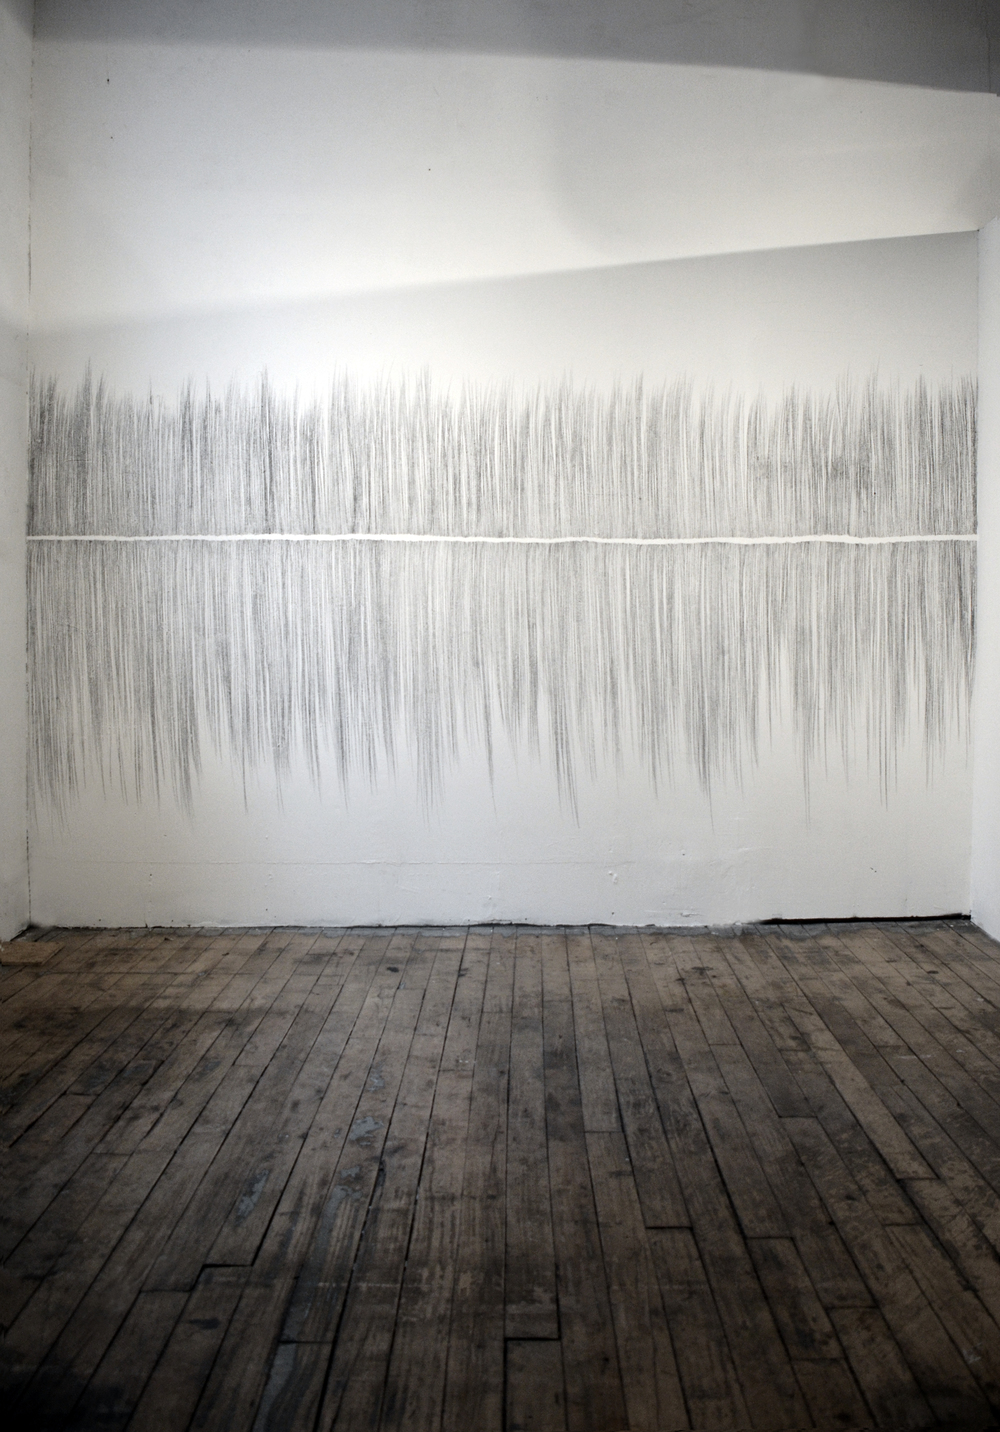 Culminate (installation), 2015, drawing